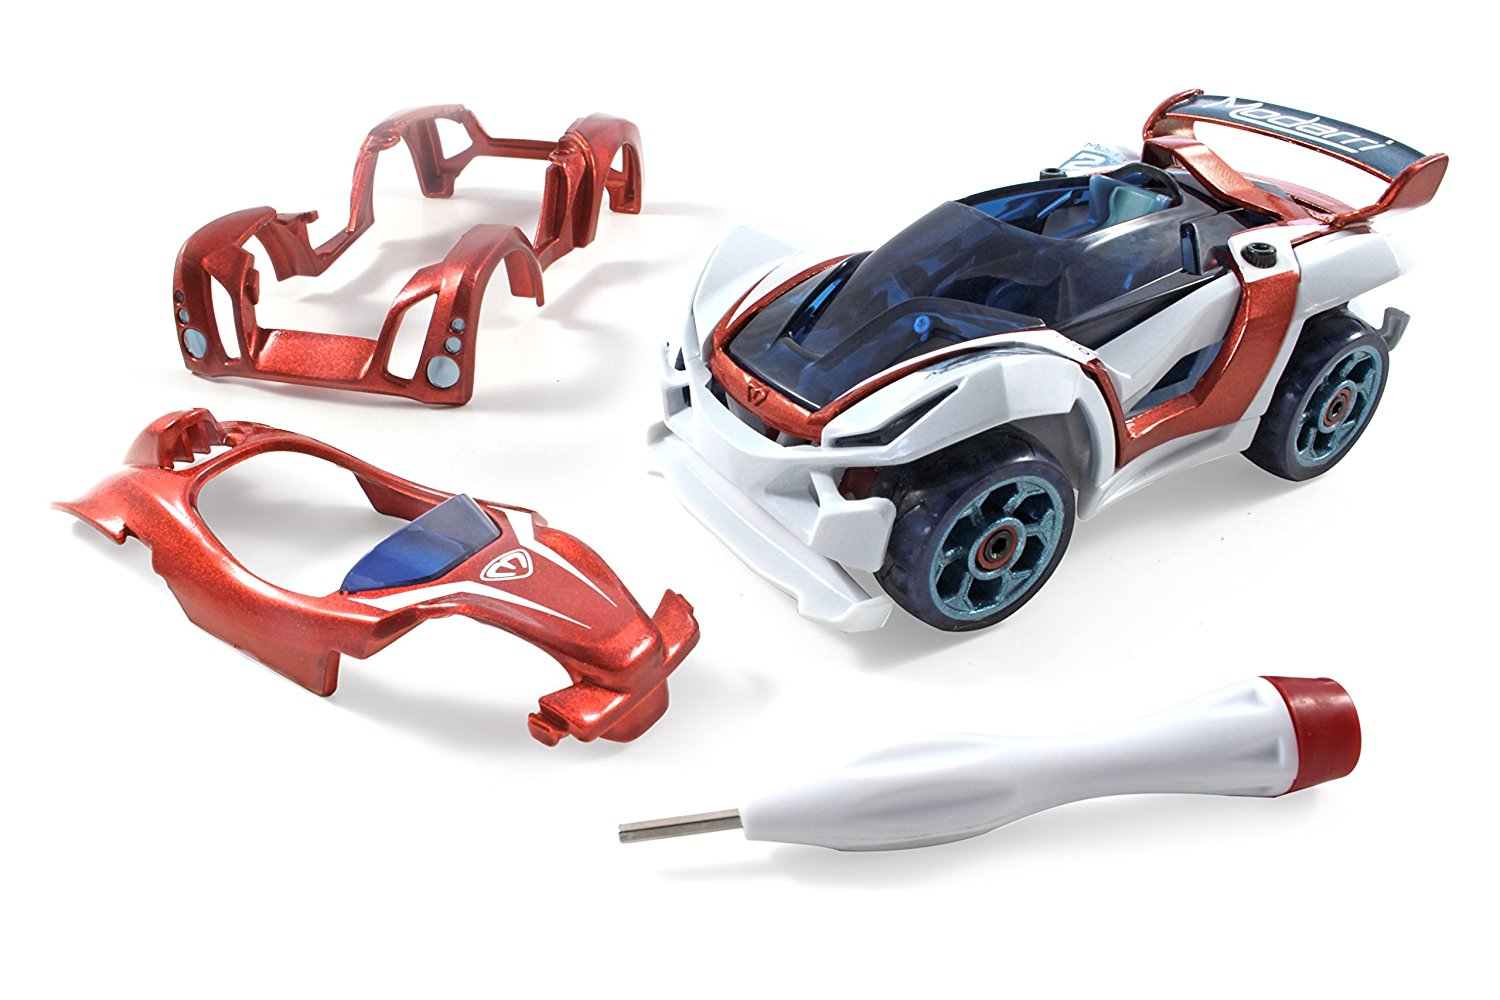 Modarri Delux T1 Track Car Ultimate Toy Car: Fully Customizable Mix and Match For Thousands of Designs Real Steering and Suspension Educational Construction Toy For Kids